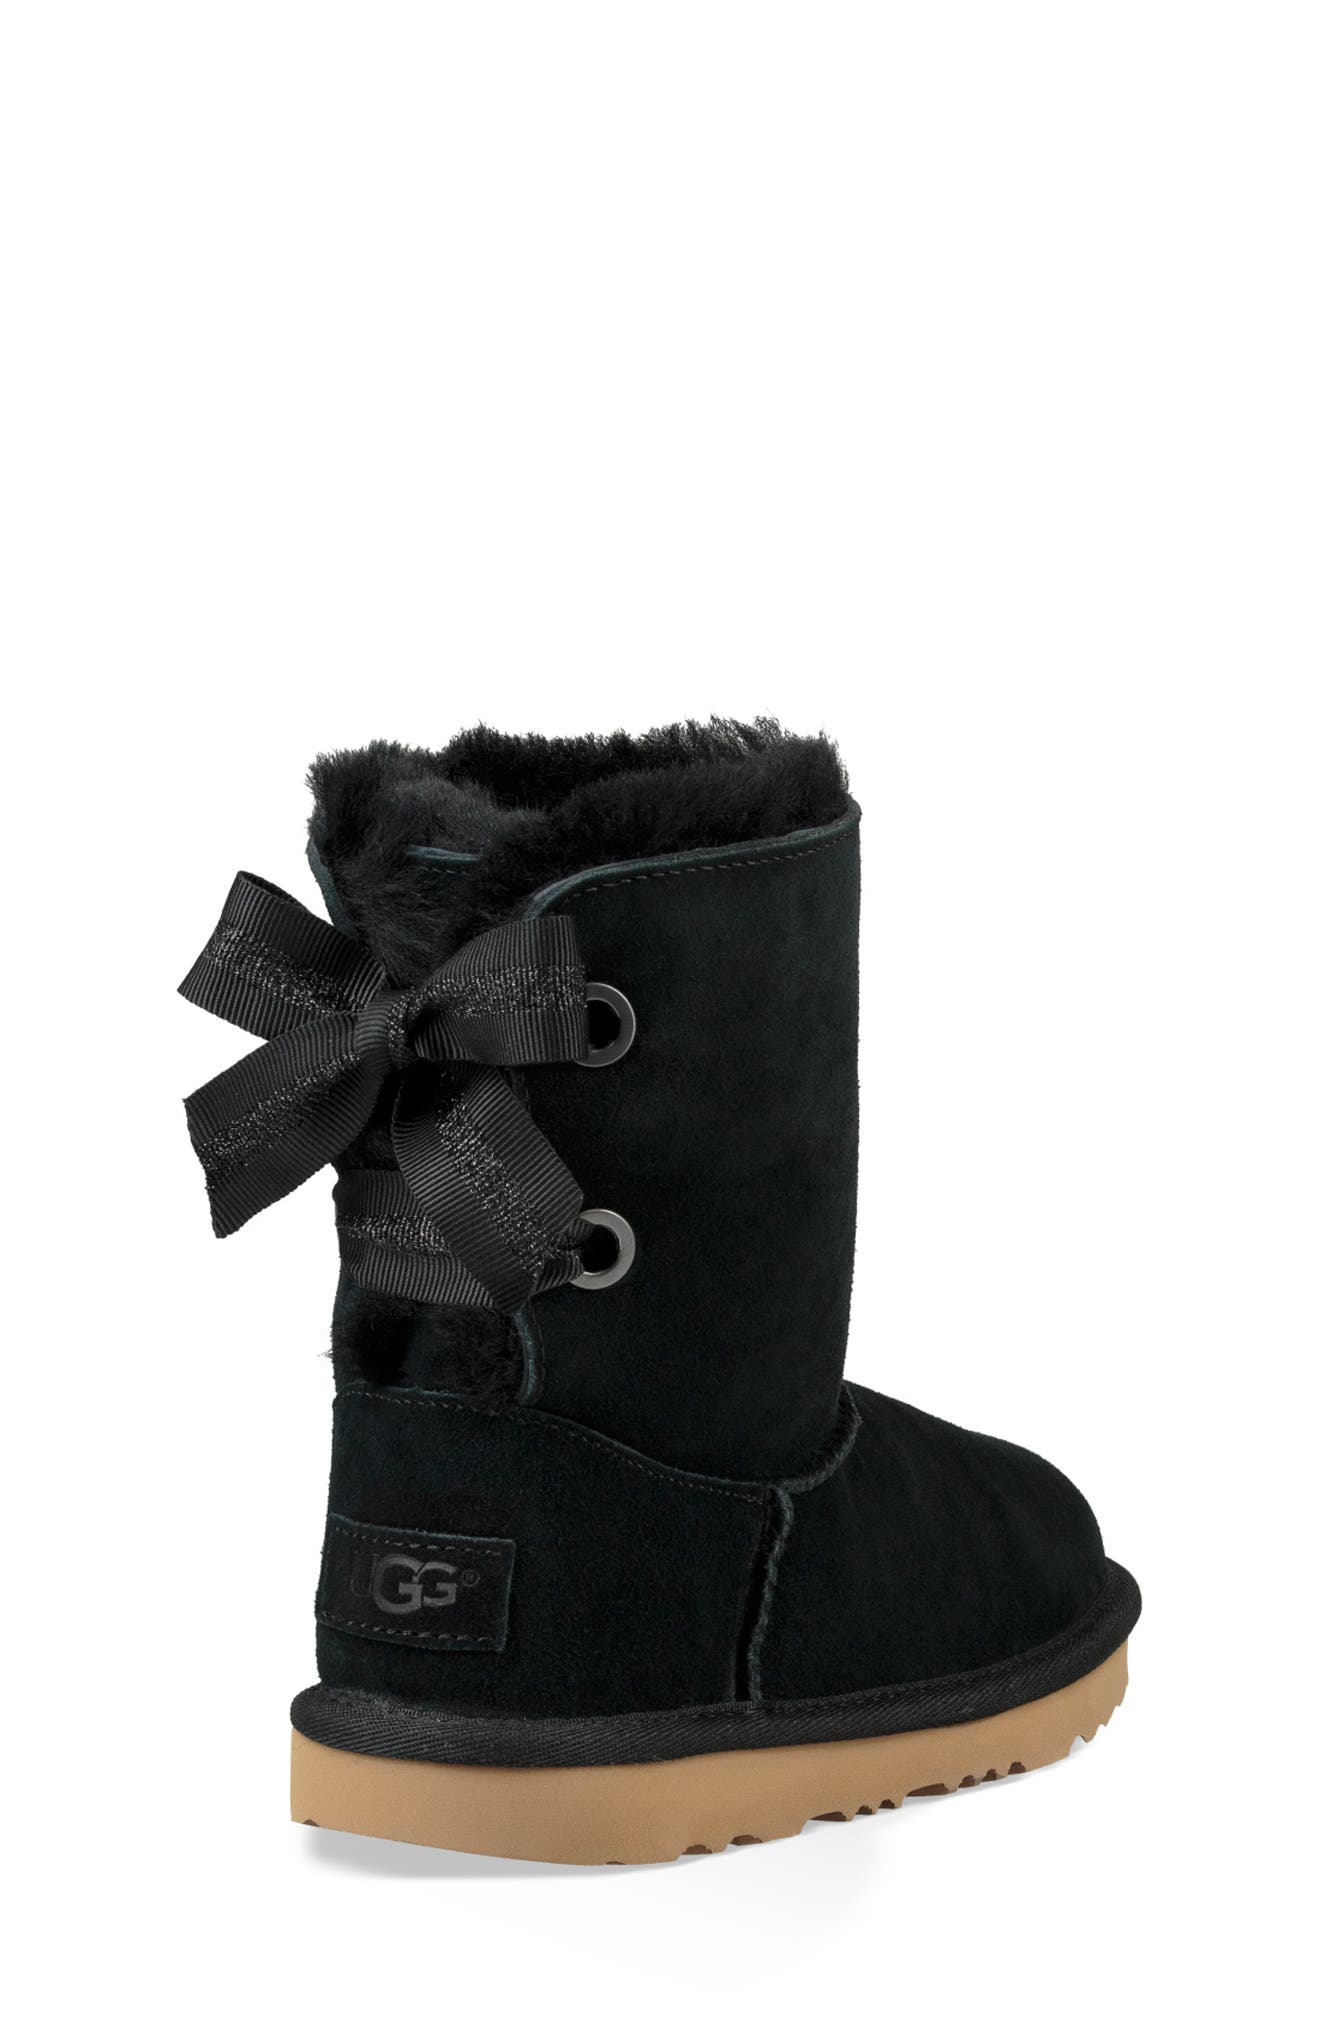 UGG<SUP>®</SUP>, Customizable Bailey Bow II Genuine Shearling Boot, Alternate thumbnail 2, color, BLACK